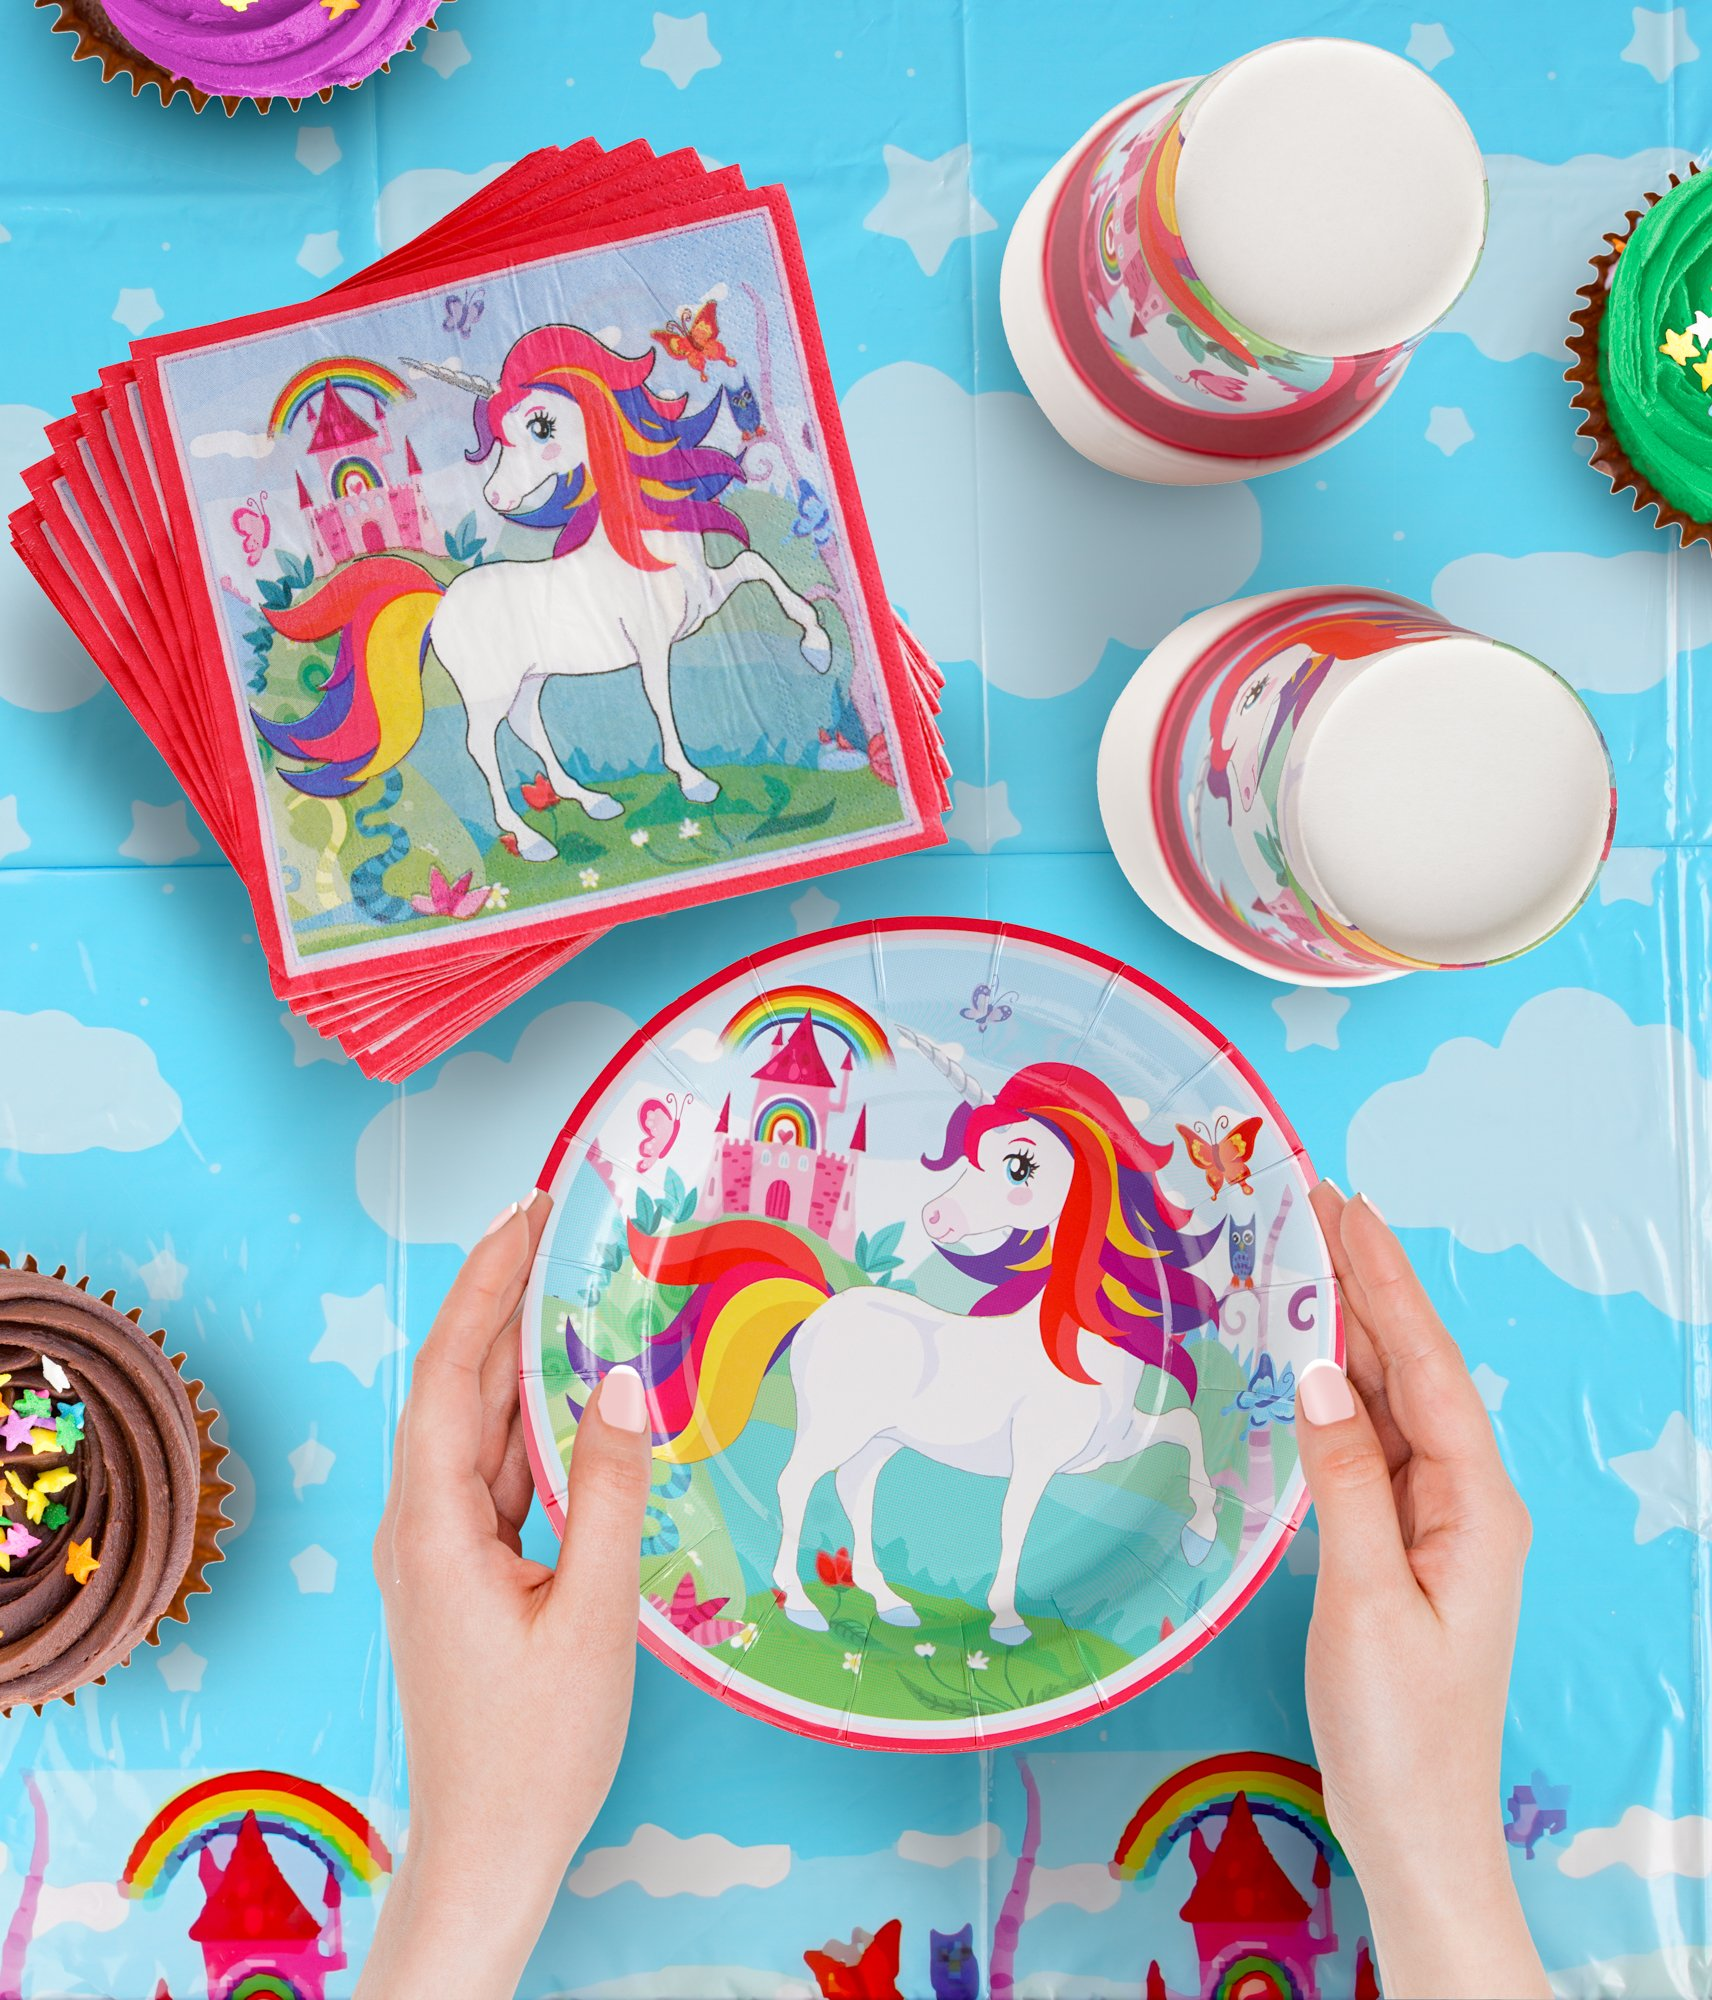 82 Piece Unicorn Party Supplies Set Including Banner, Plates, Cups, Napkins and Tablecloth, Serves 20 by Scale Rank (Image #2)